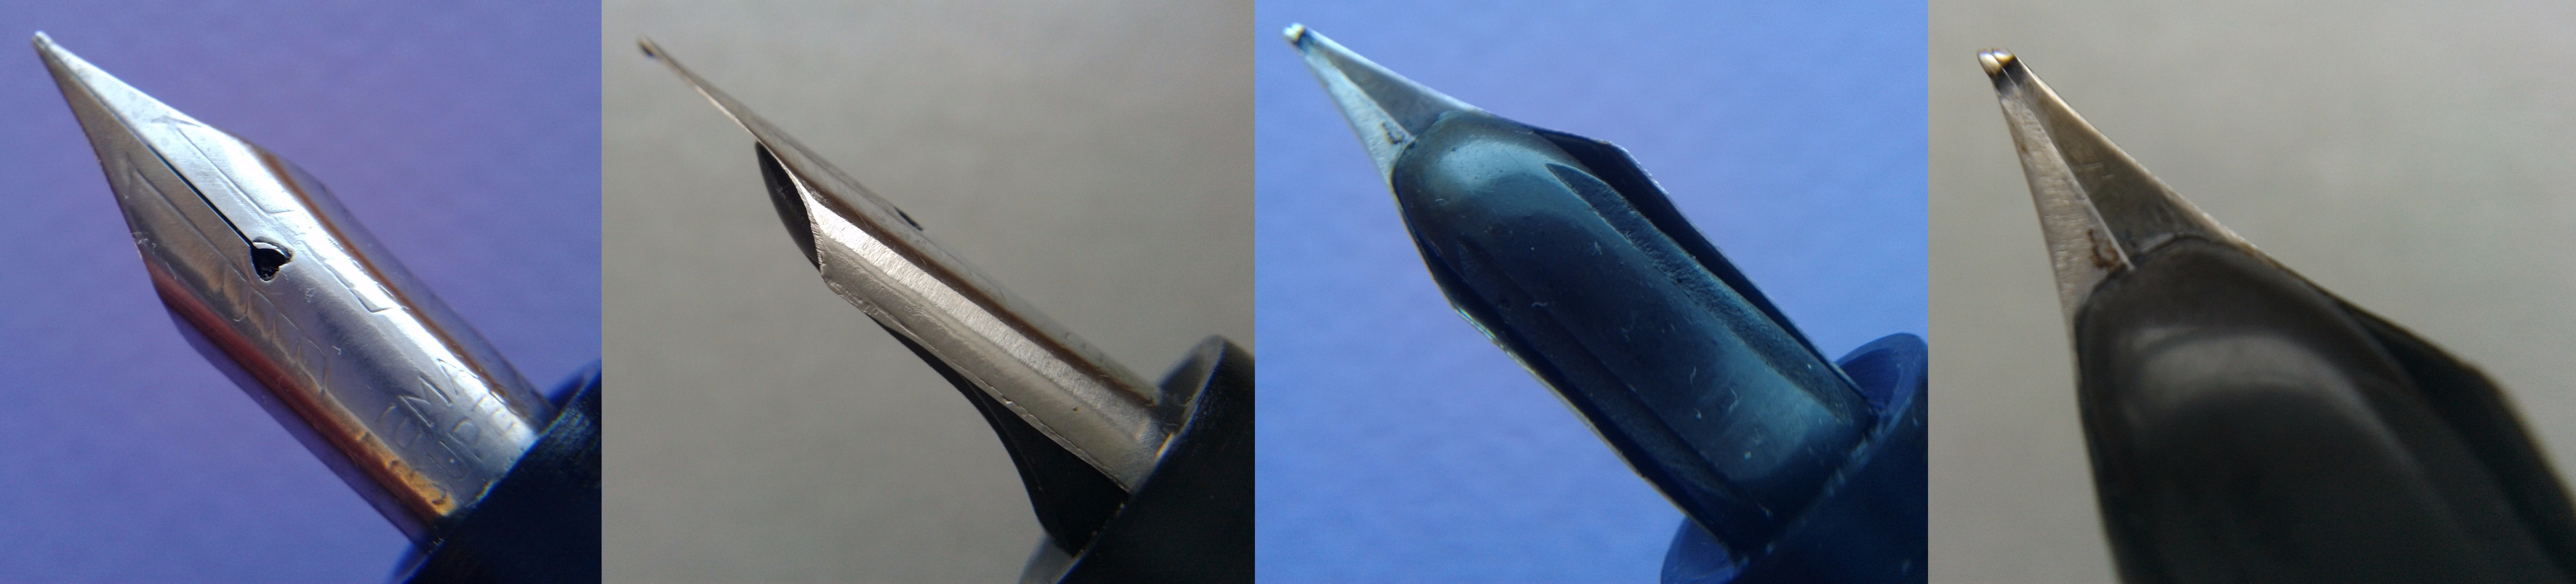 17. ZS. nib and feeder.jpg